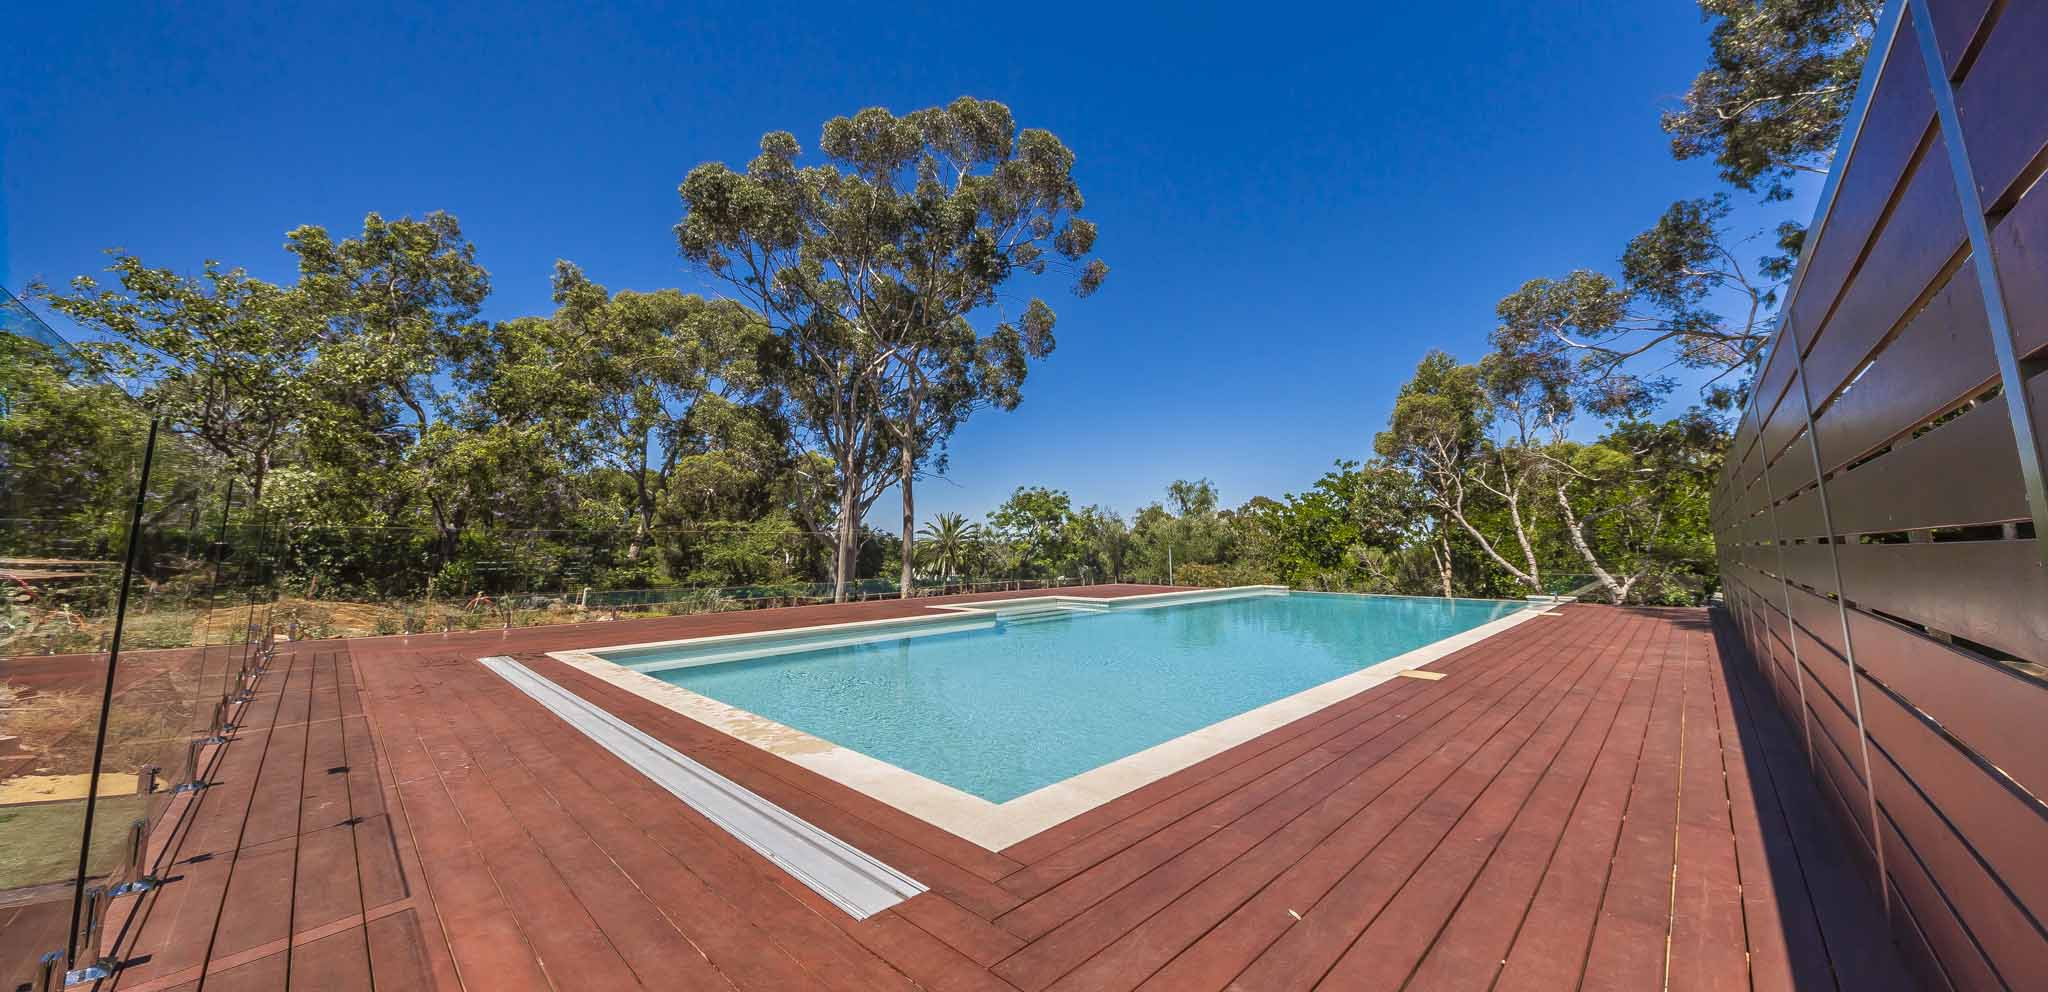 pool and deck with trees